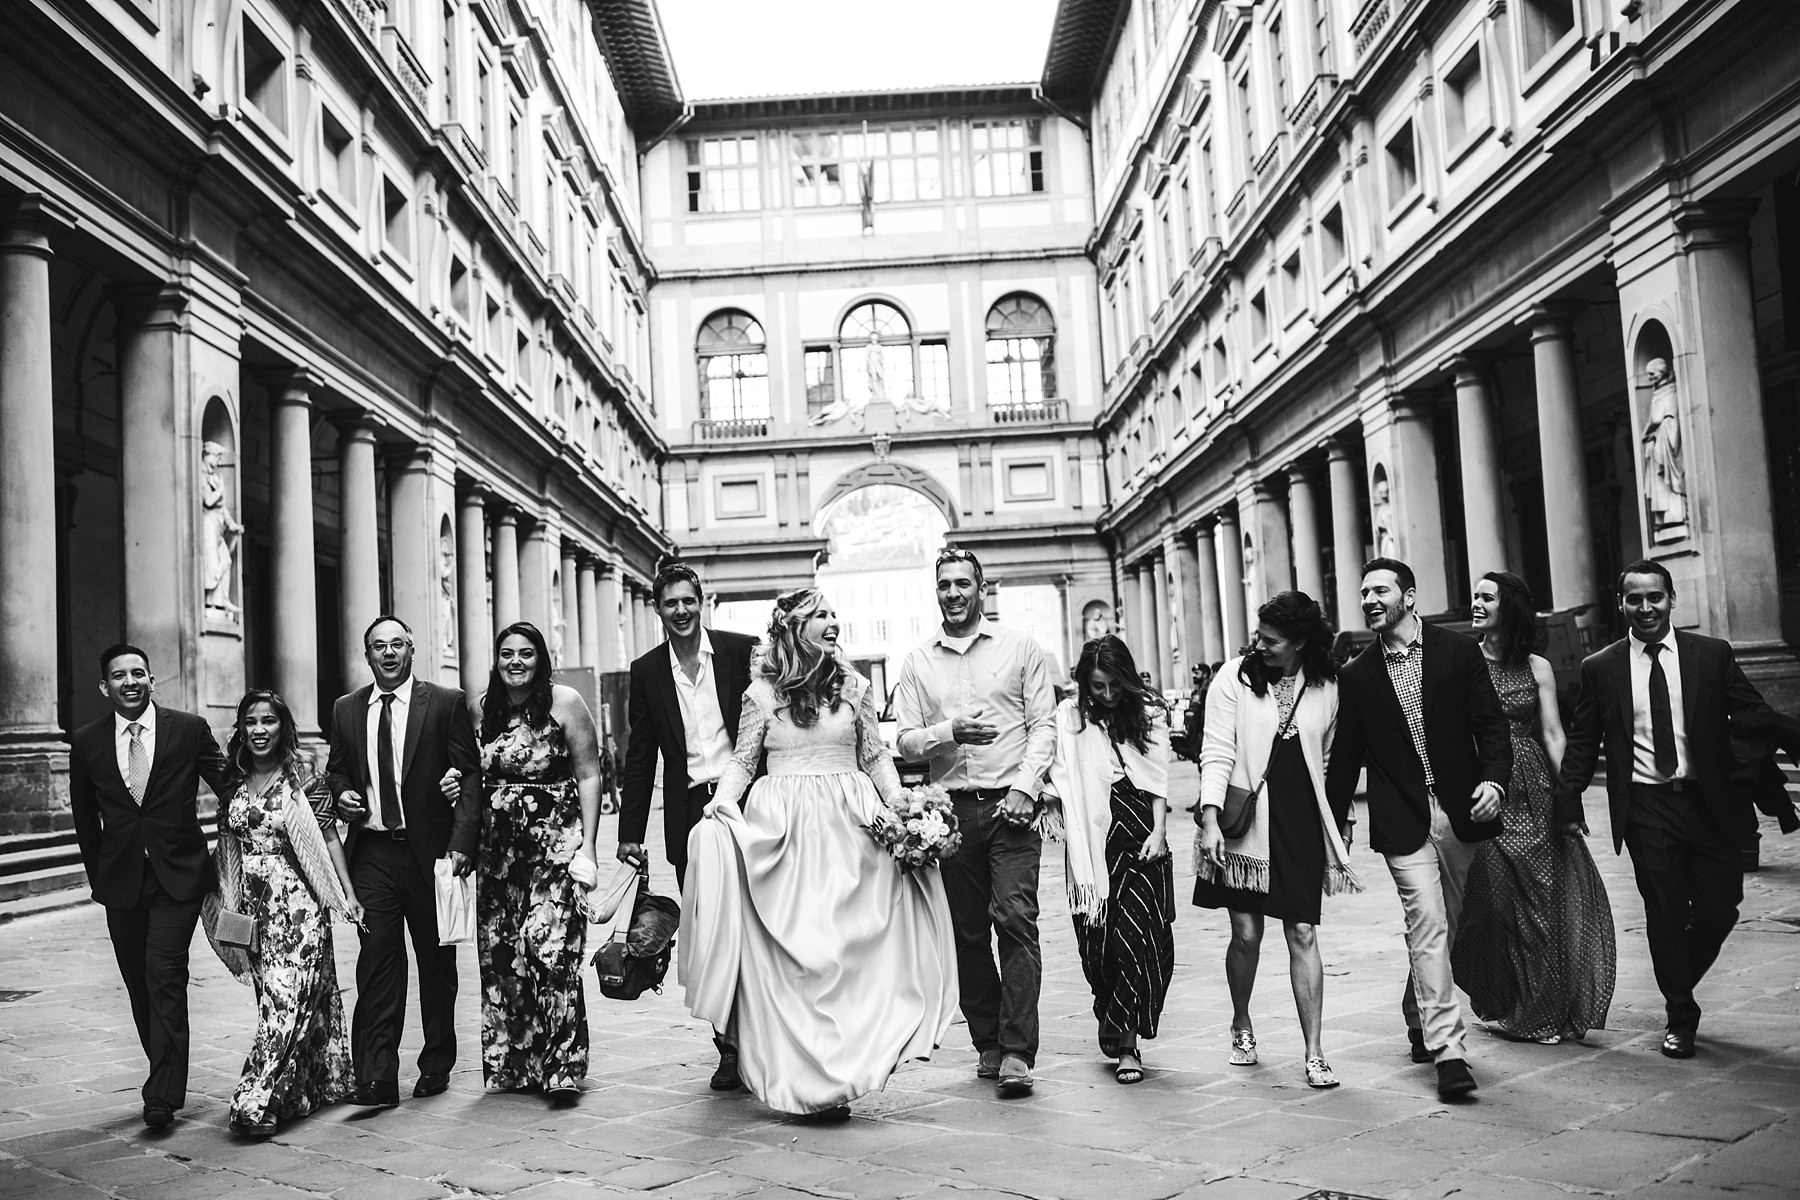 Unforgettable and exciting talk tour photo session with vows renewal in Florence at Uffizi Gallery in Florence